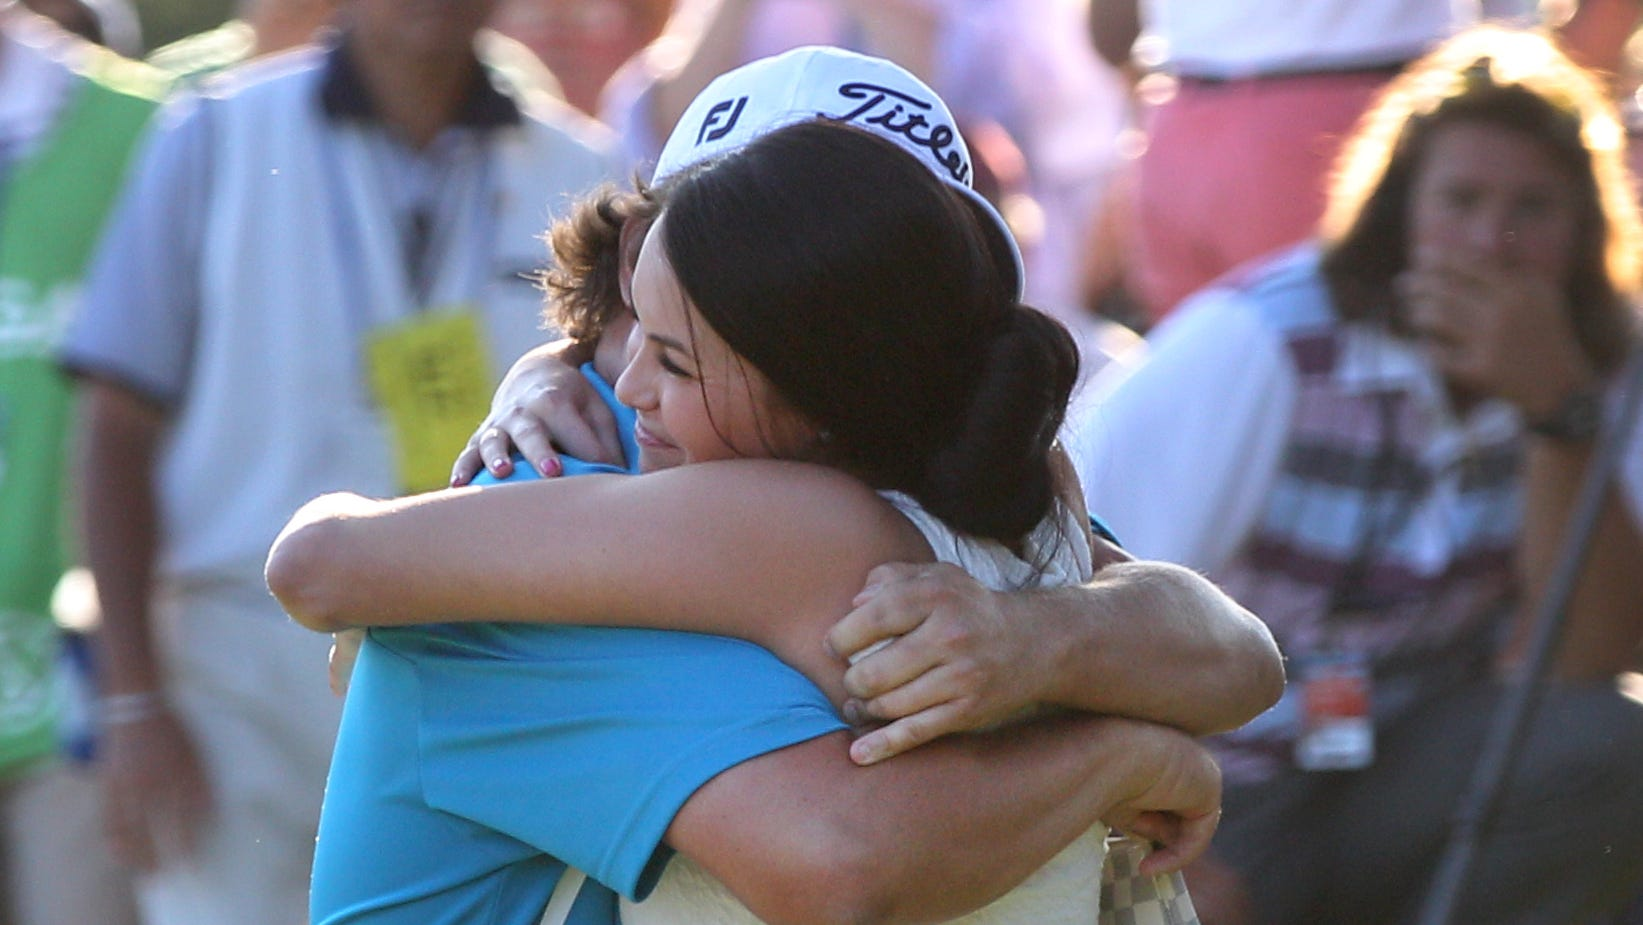 Jason Dufner hugs his wife, Amanda Dufner, after he won the 95th PGA Championship at Oak Hill in Pittsford, NY August 11, 2013.